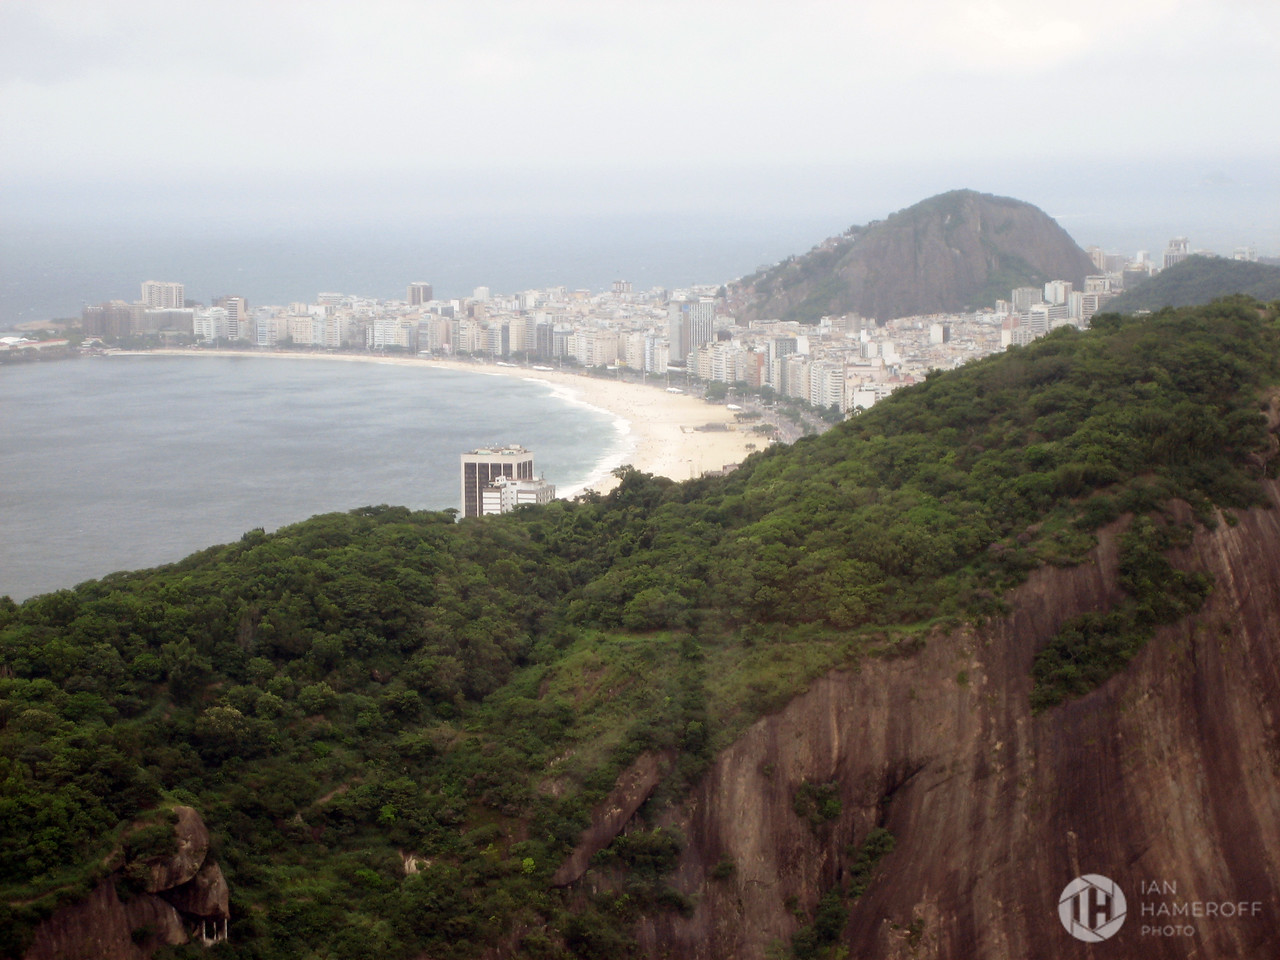 More of Rio by Cable Car